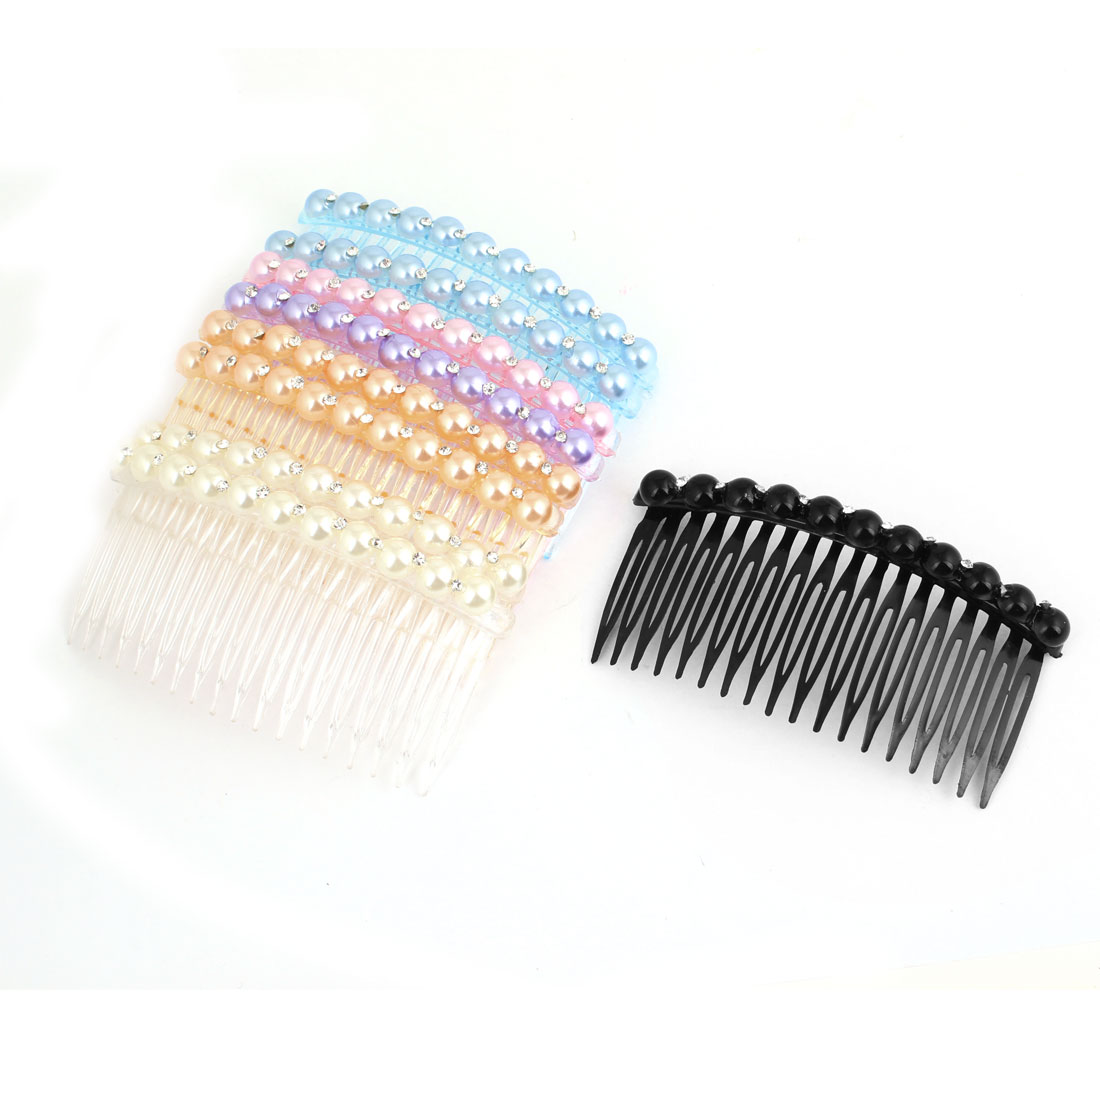 9 Pcs Colorful Plastic Imitation Pearls Rhinestone Decor 18 Teeth Hair Clip Comb